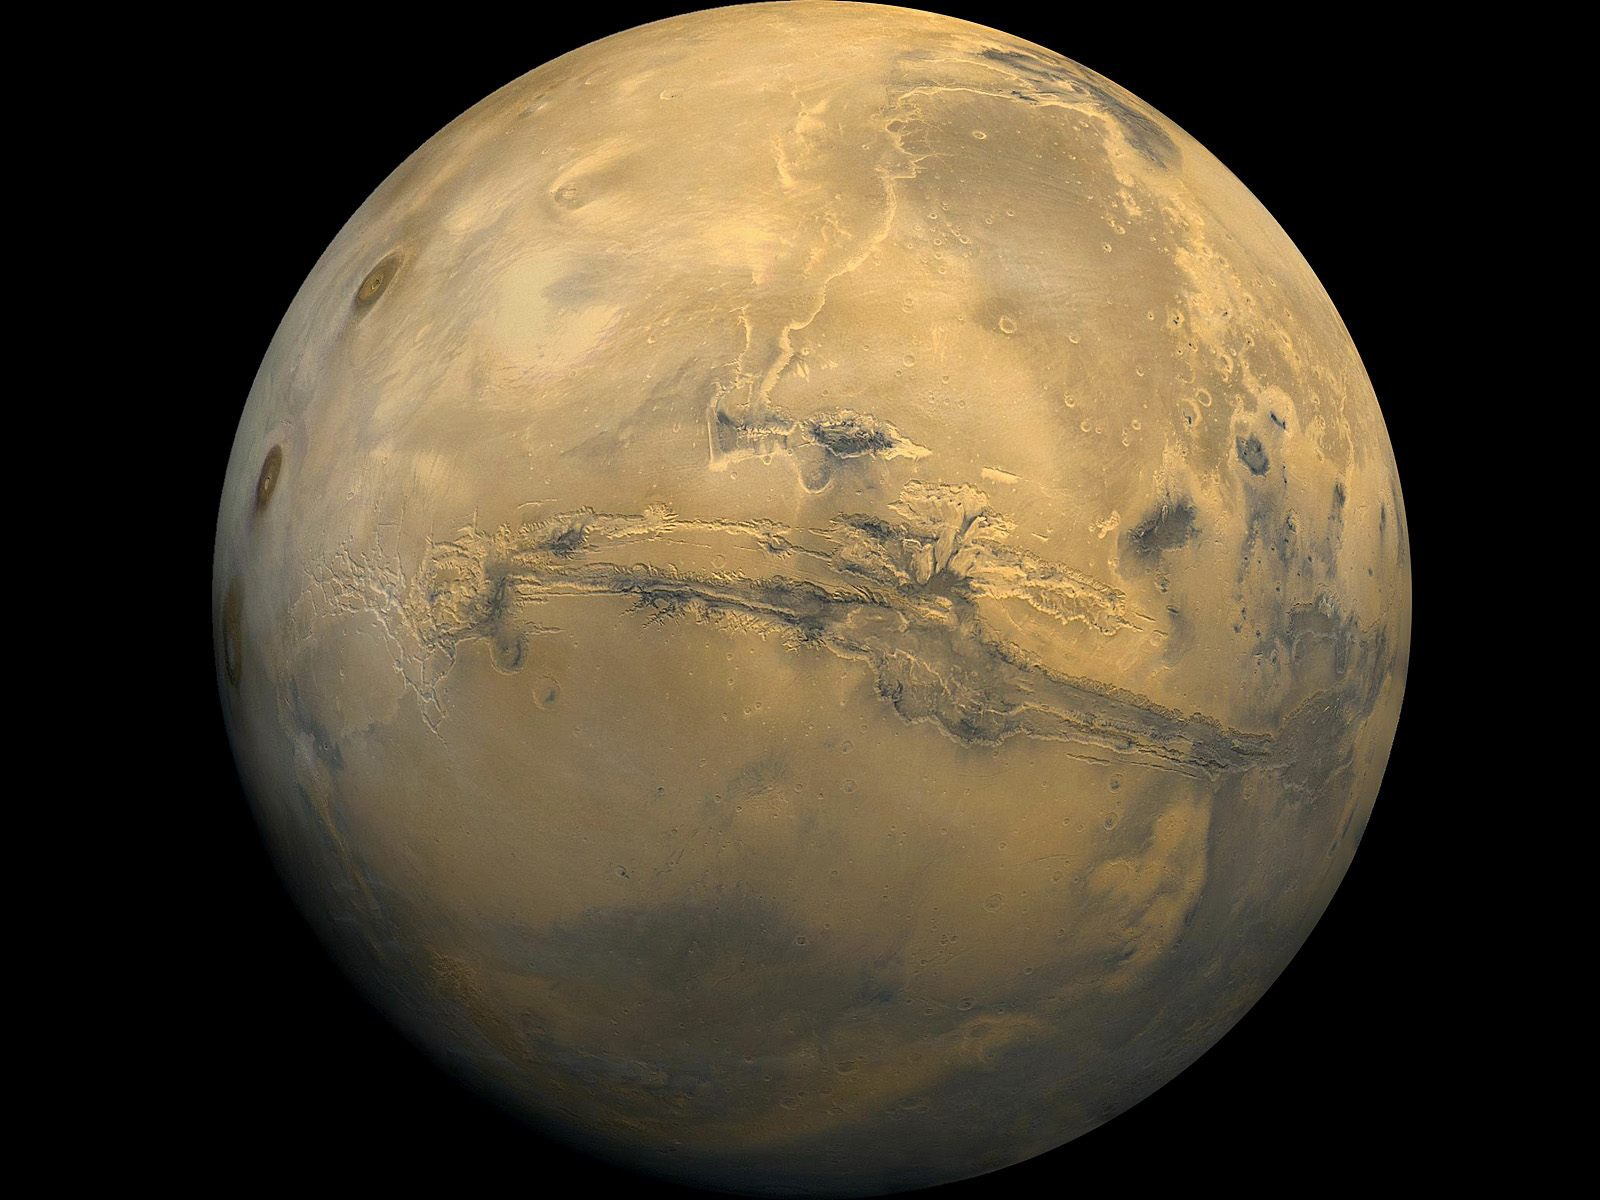 Mars Wallpaper Space Nature Wallpapers in jpg format for free download